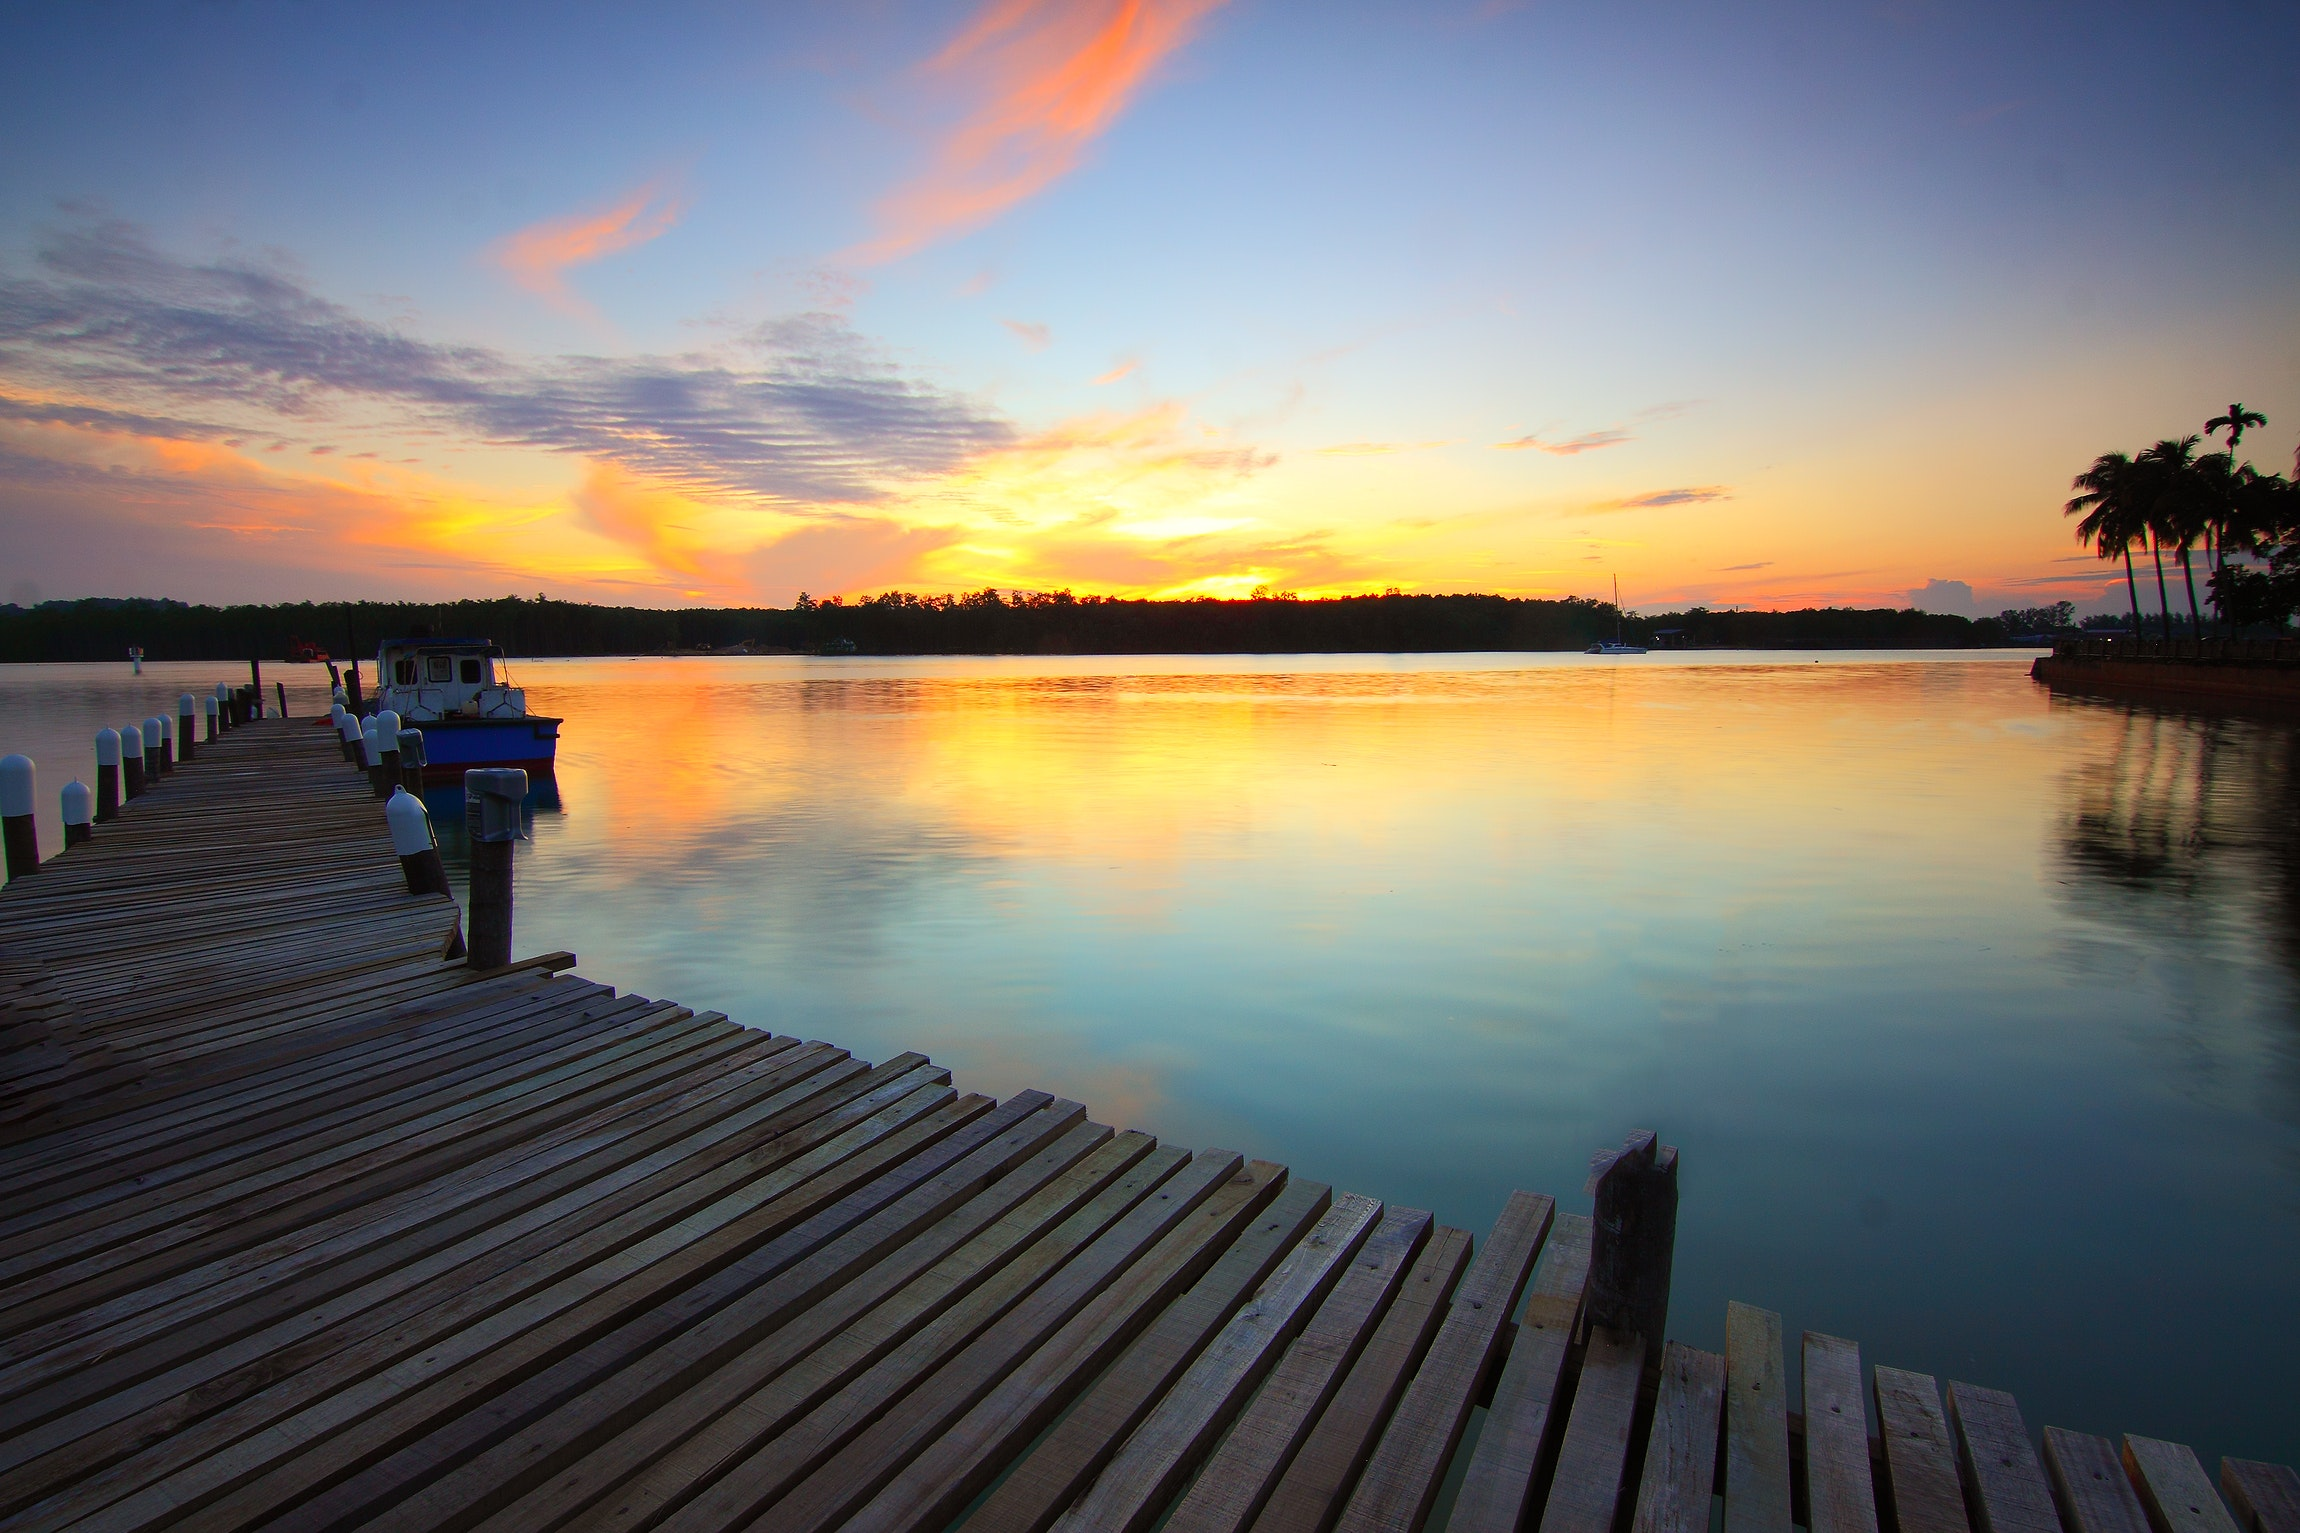 Brown wooden dock on body of water during twilight photo